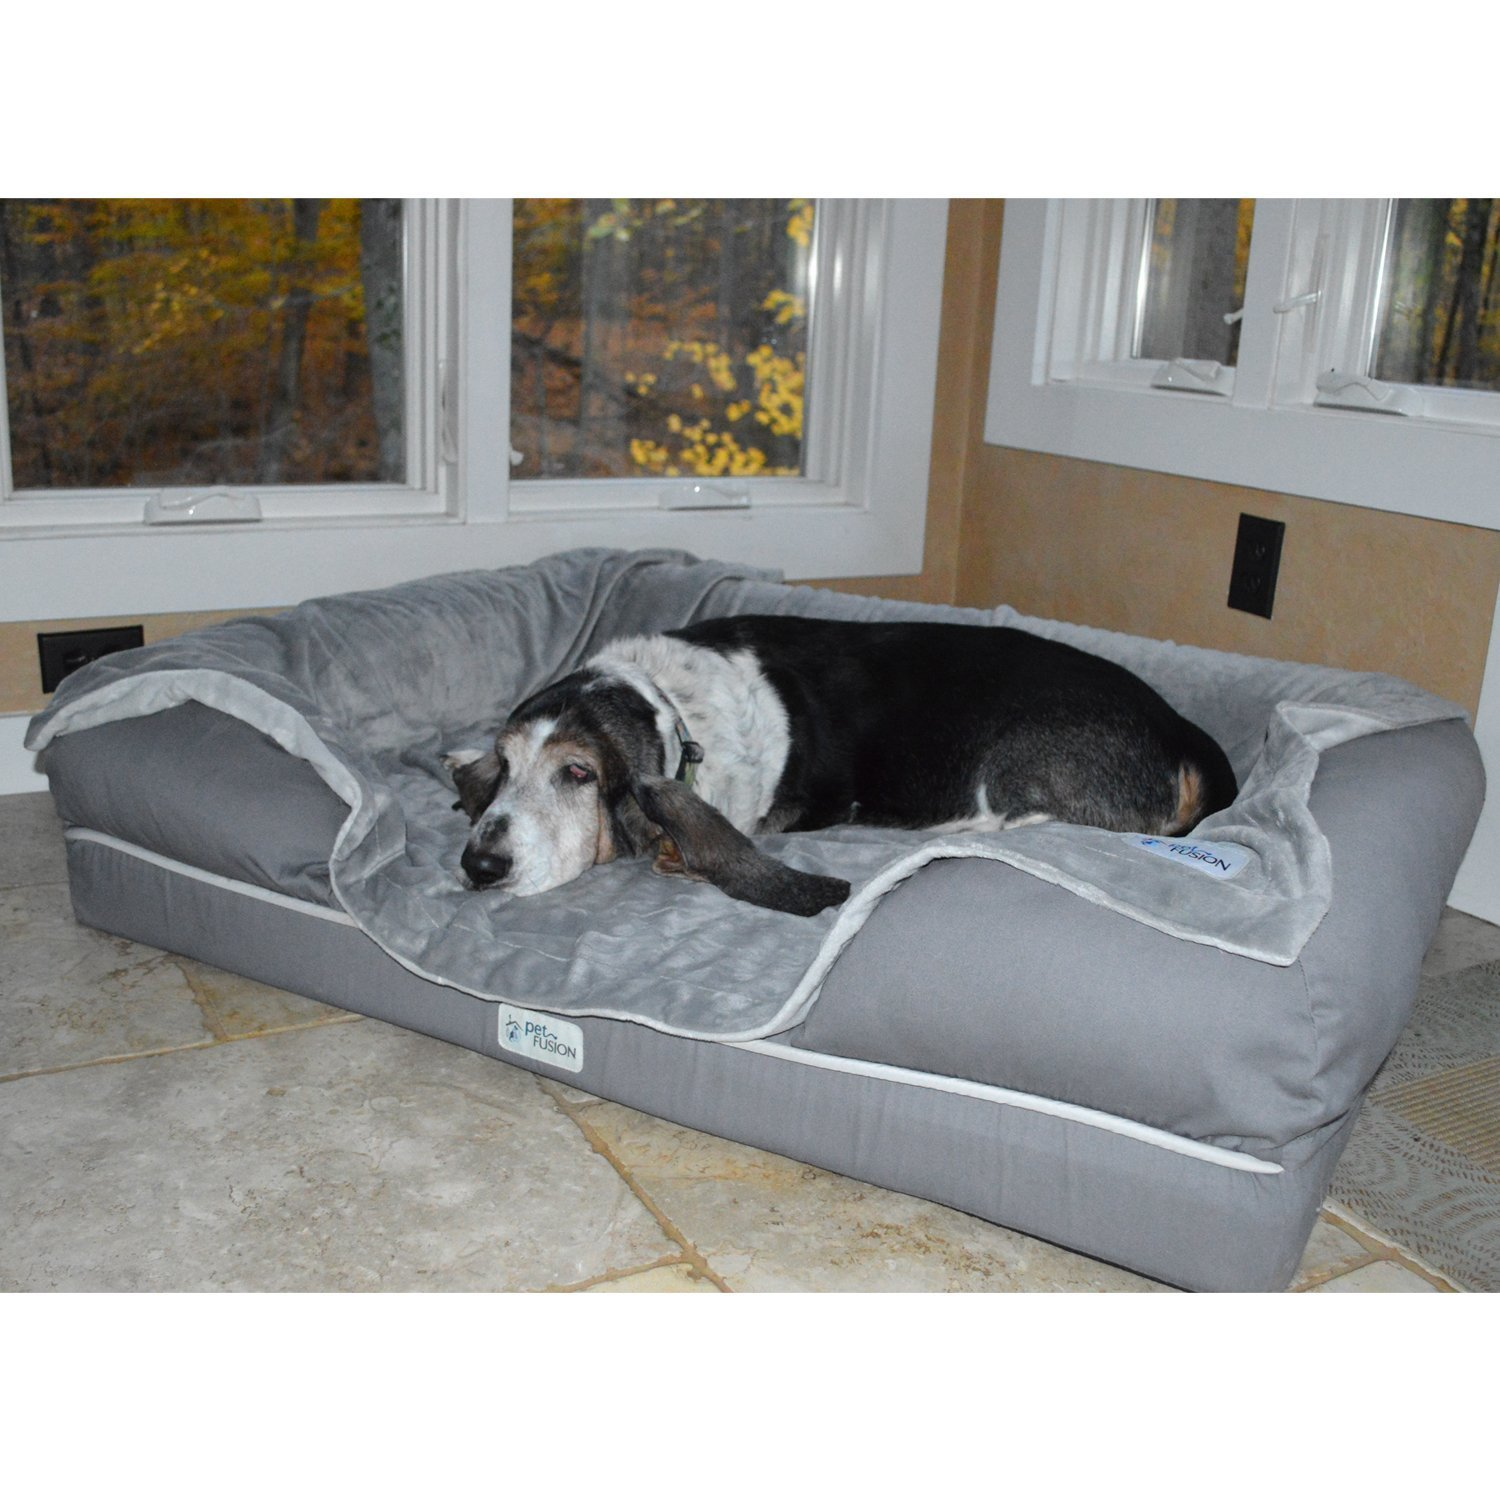 We Tested This Deluxe Memory Foam Pet Bed And Our Dogs Got